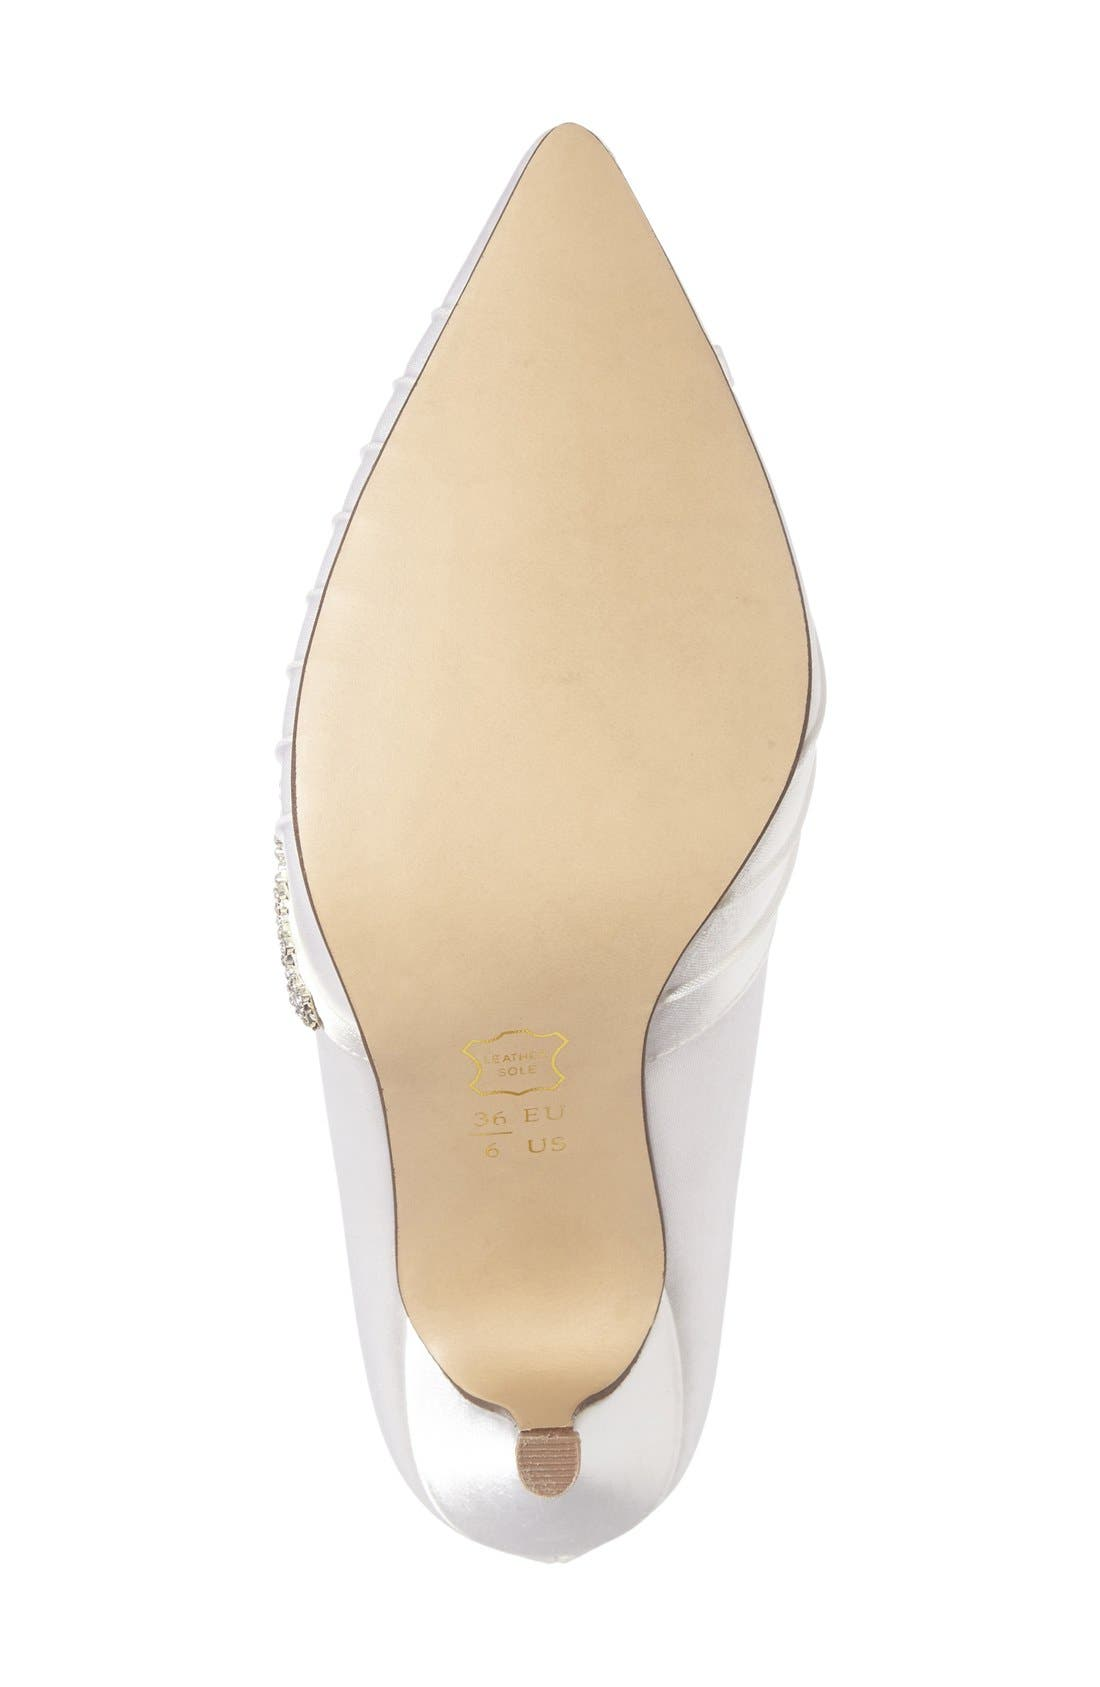 Union Crystal Embellished Pointy Toe Pump,                             Alternate thumbnail 4, color,                             100